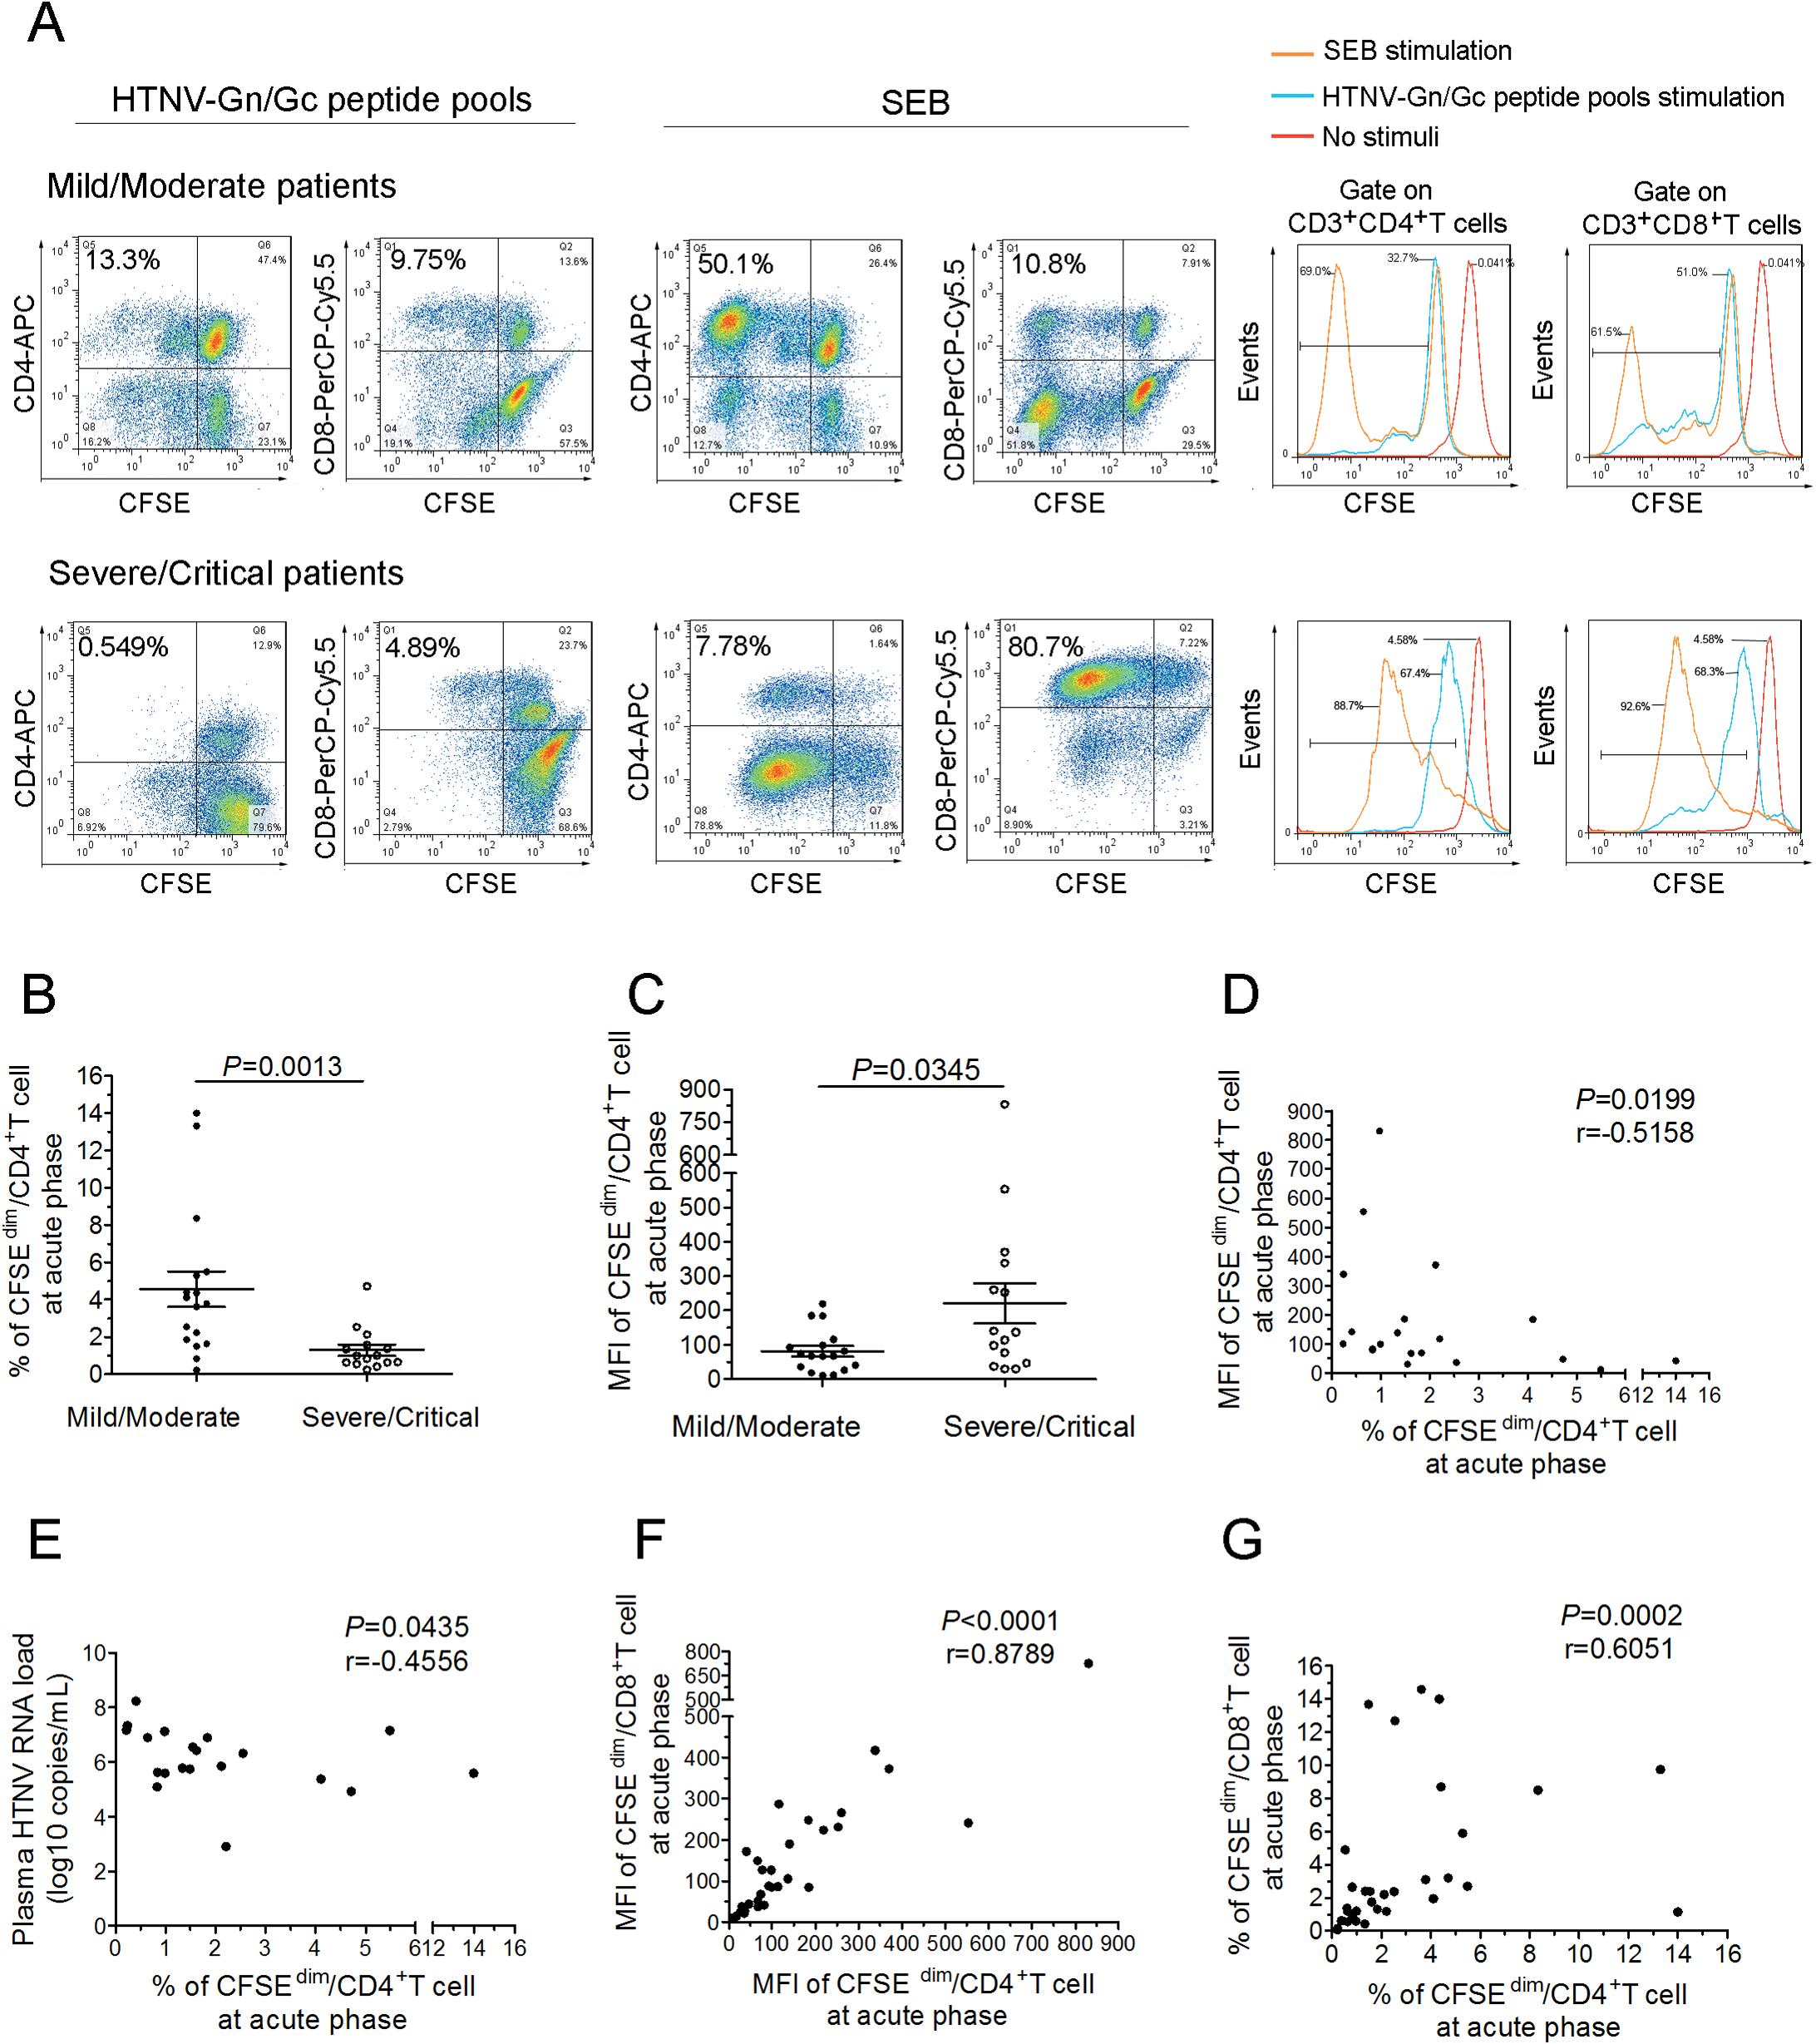 The expansion capacity of HTNV-Gn/Gc-specific CD4<sup>+</sup>T cells is associated with viremia control in HFRS patients.